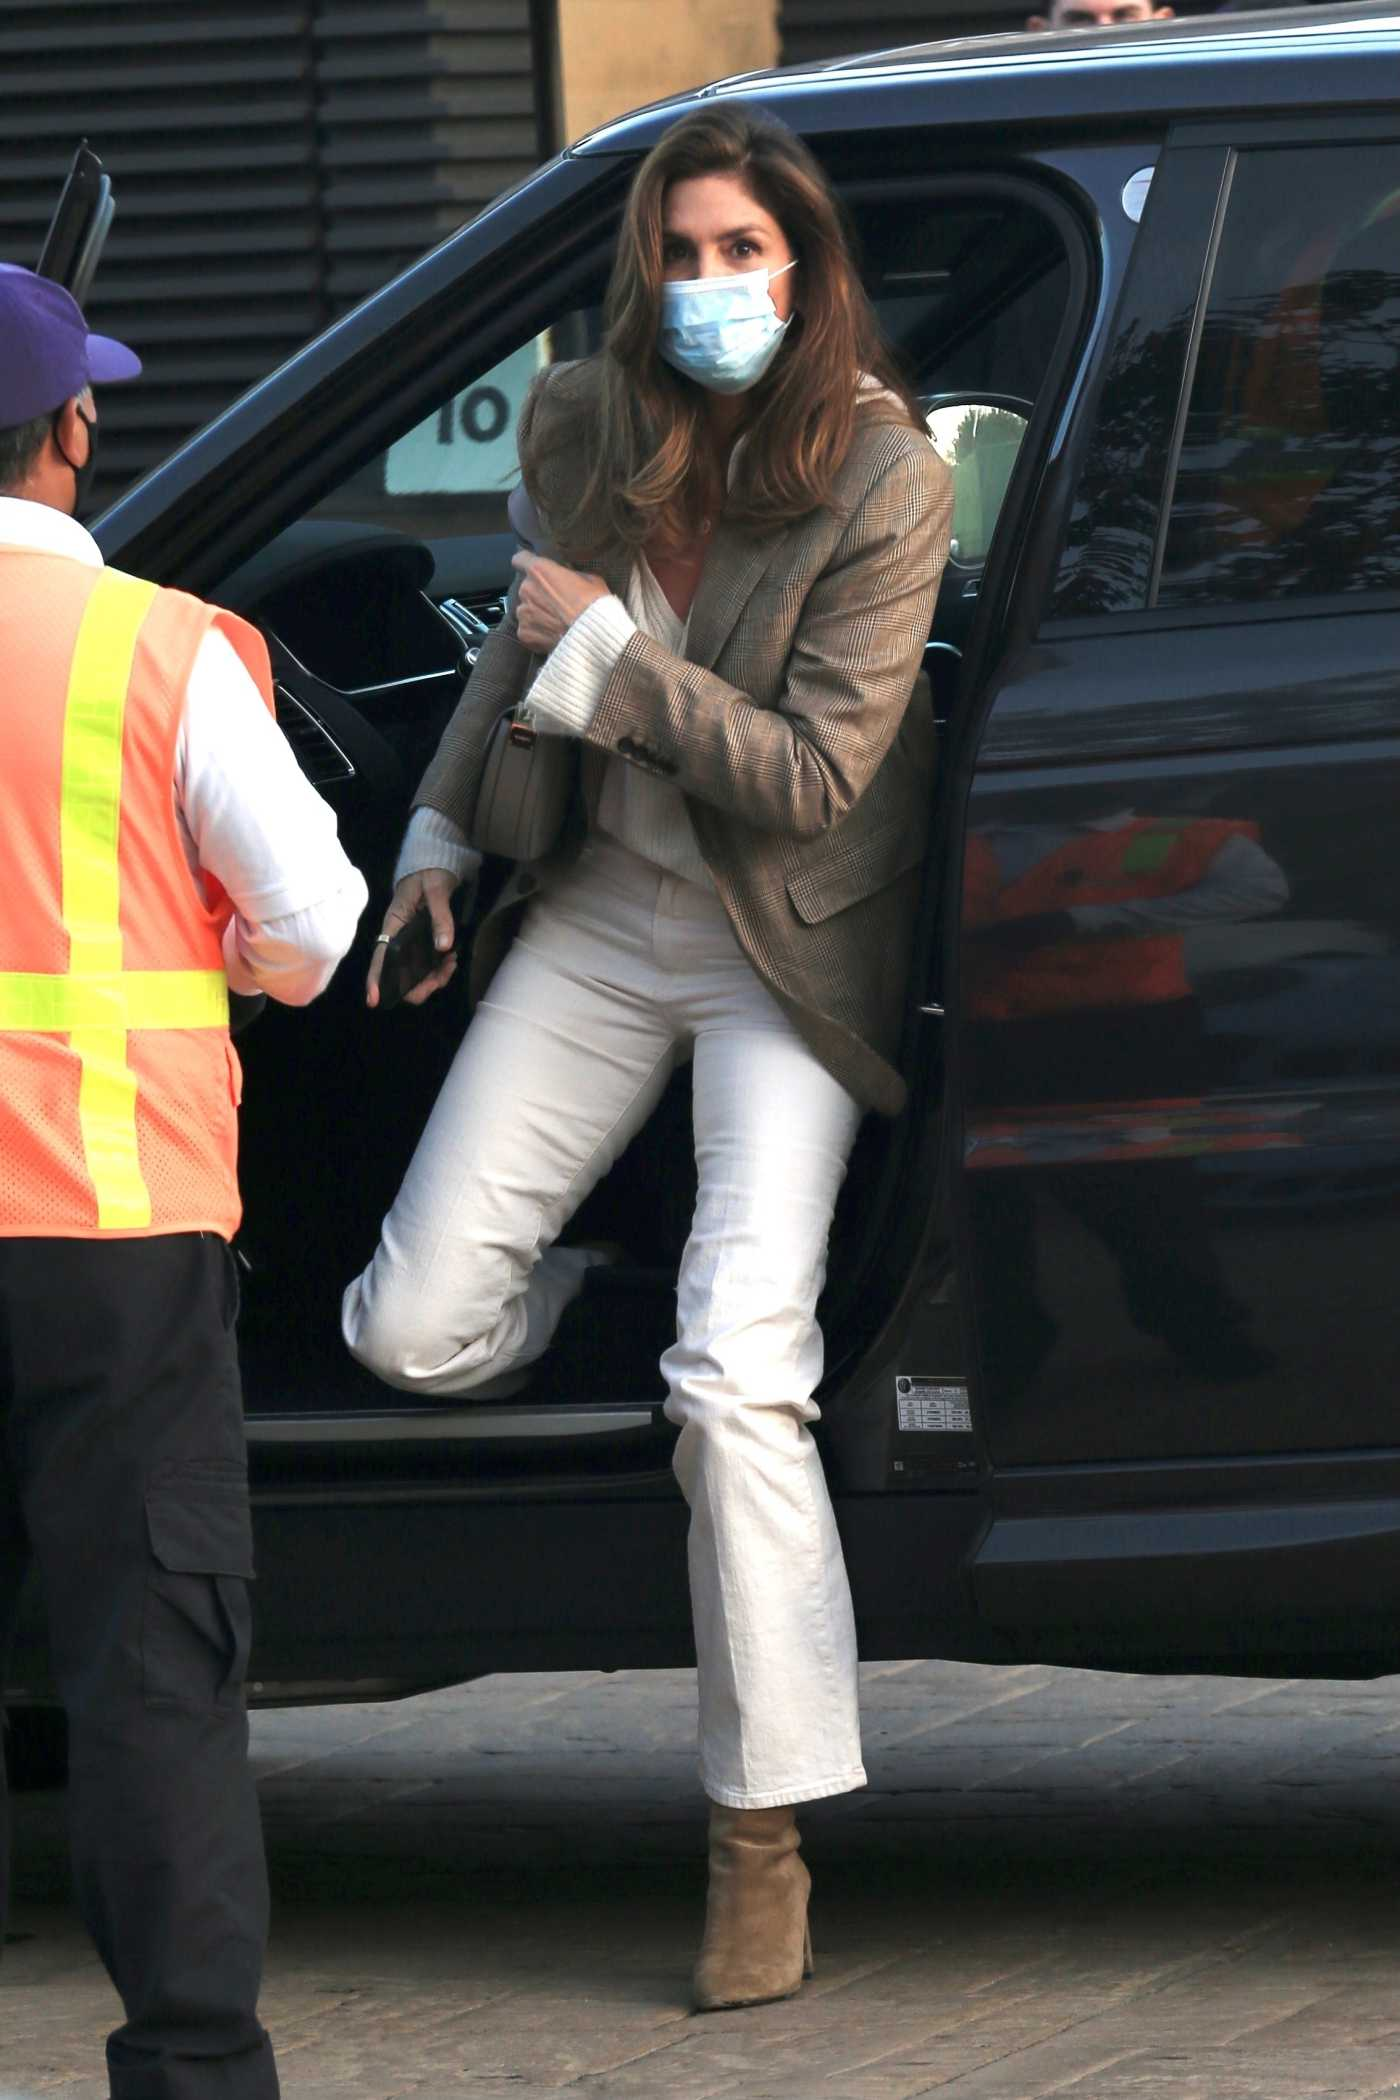 Cindy Crawford in a White Pants Arrives at Nobu for Dinner in Malibu 04/05/2021